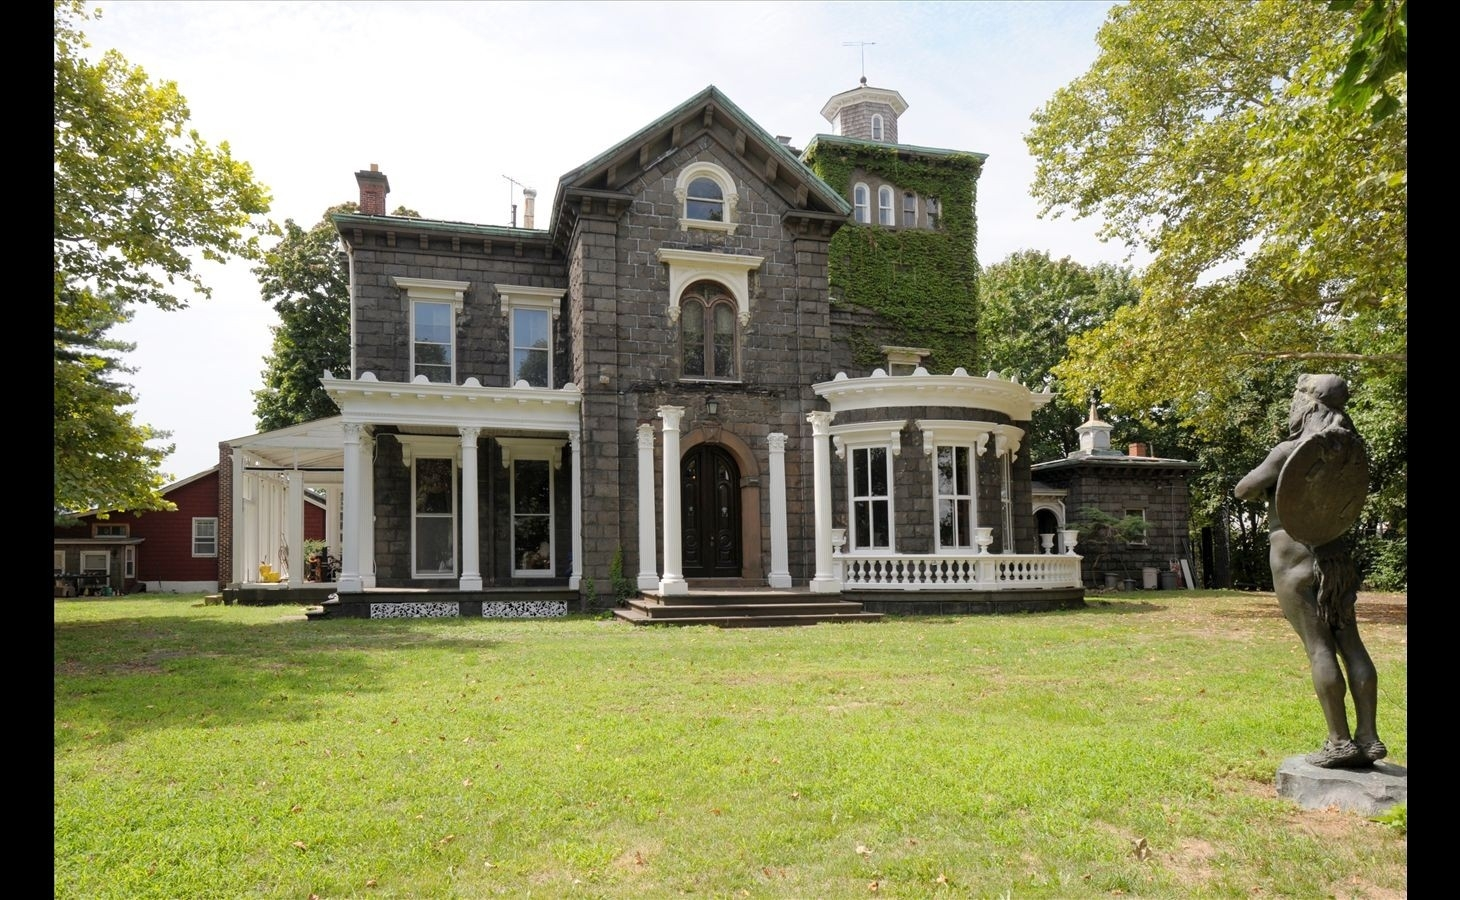 3. THE STEINWAY MANSION建於18-33 41st St, Astoria, Queens, NY